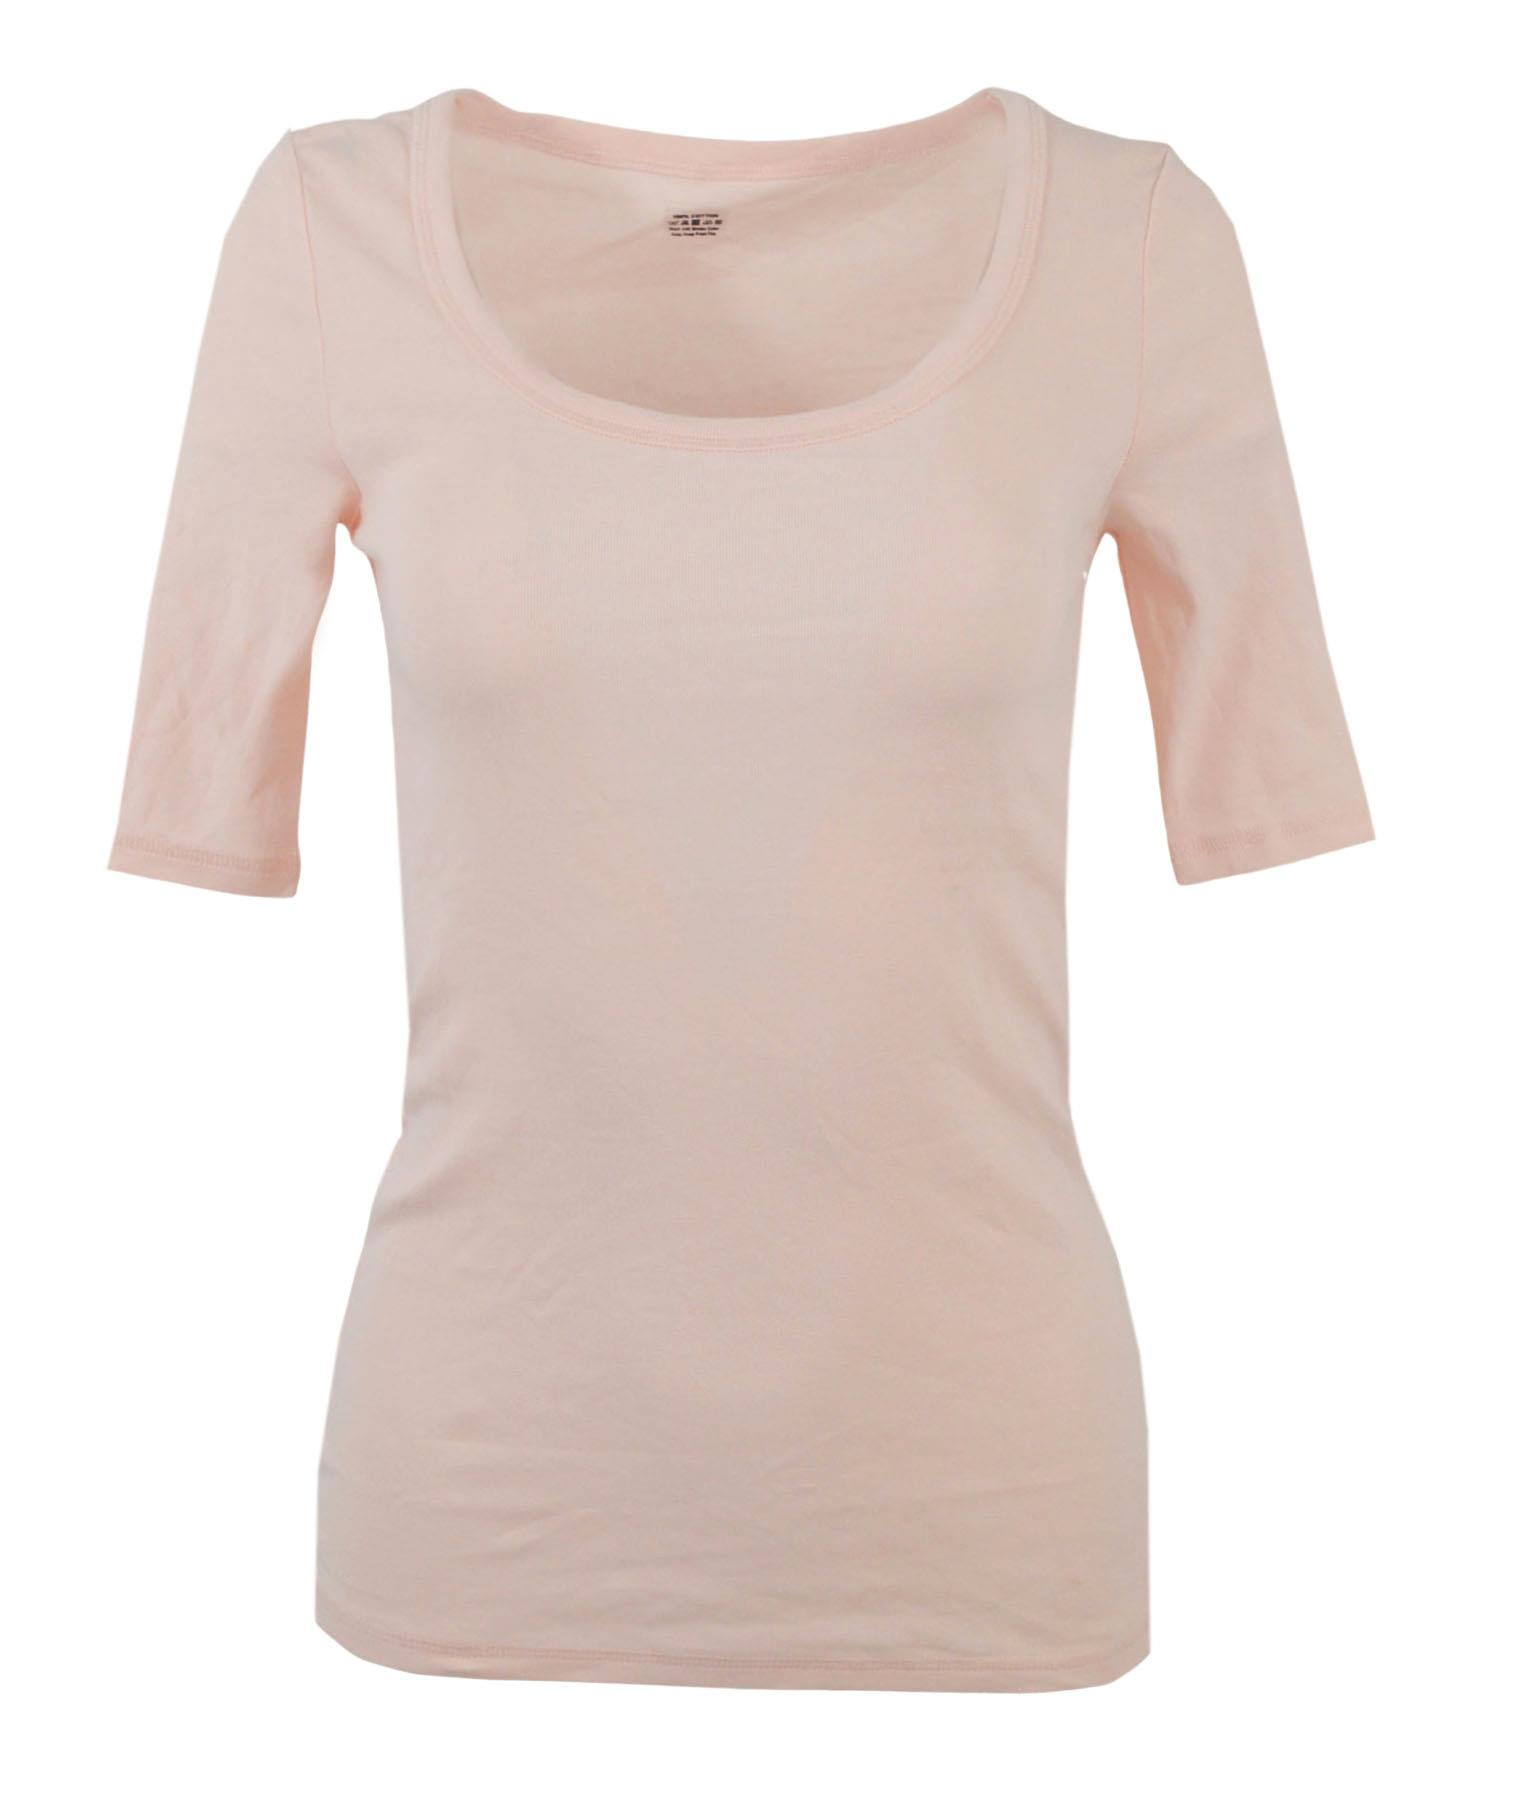 MARKS-AND-SPENCER-Womens-Scoop-Neck-Half-Sleeve-T-shirt-CLEARANCE thumbnail 14